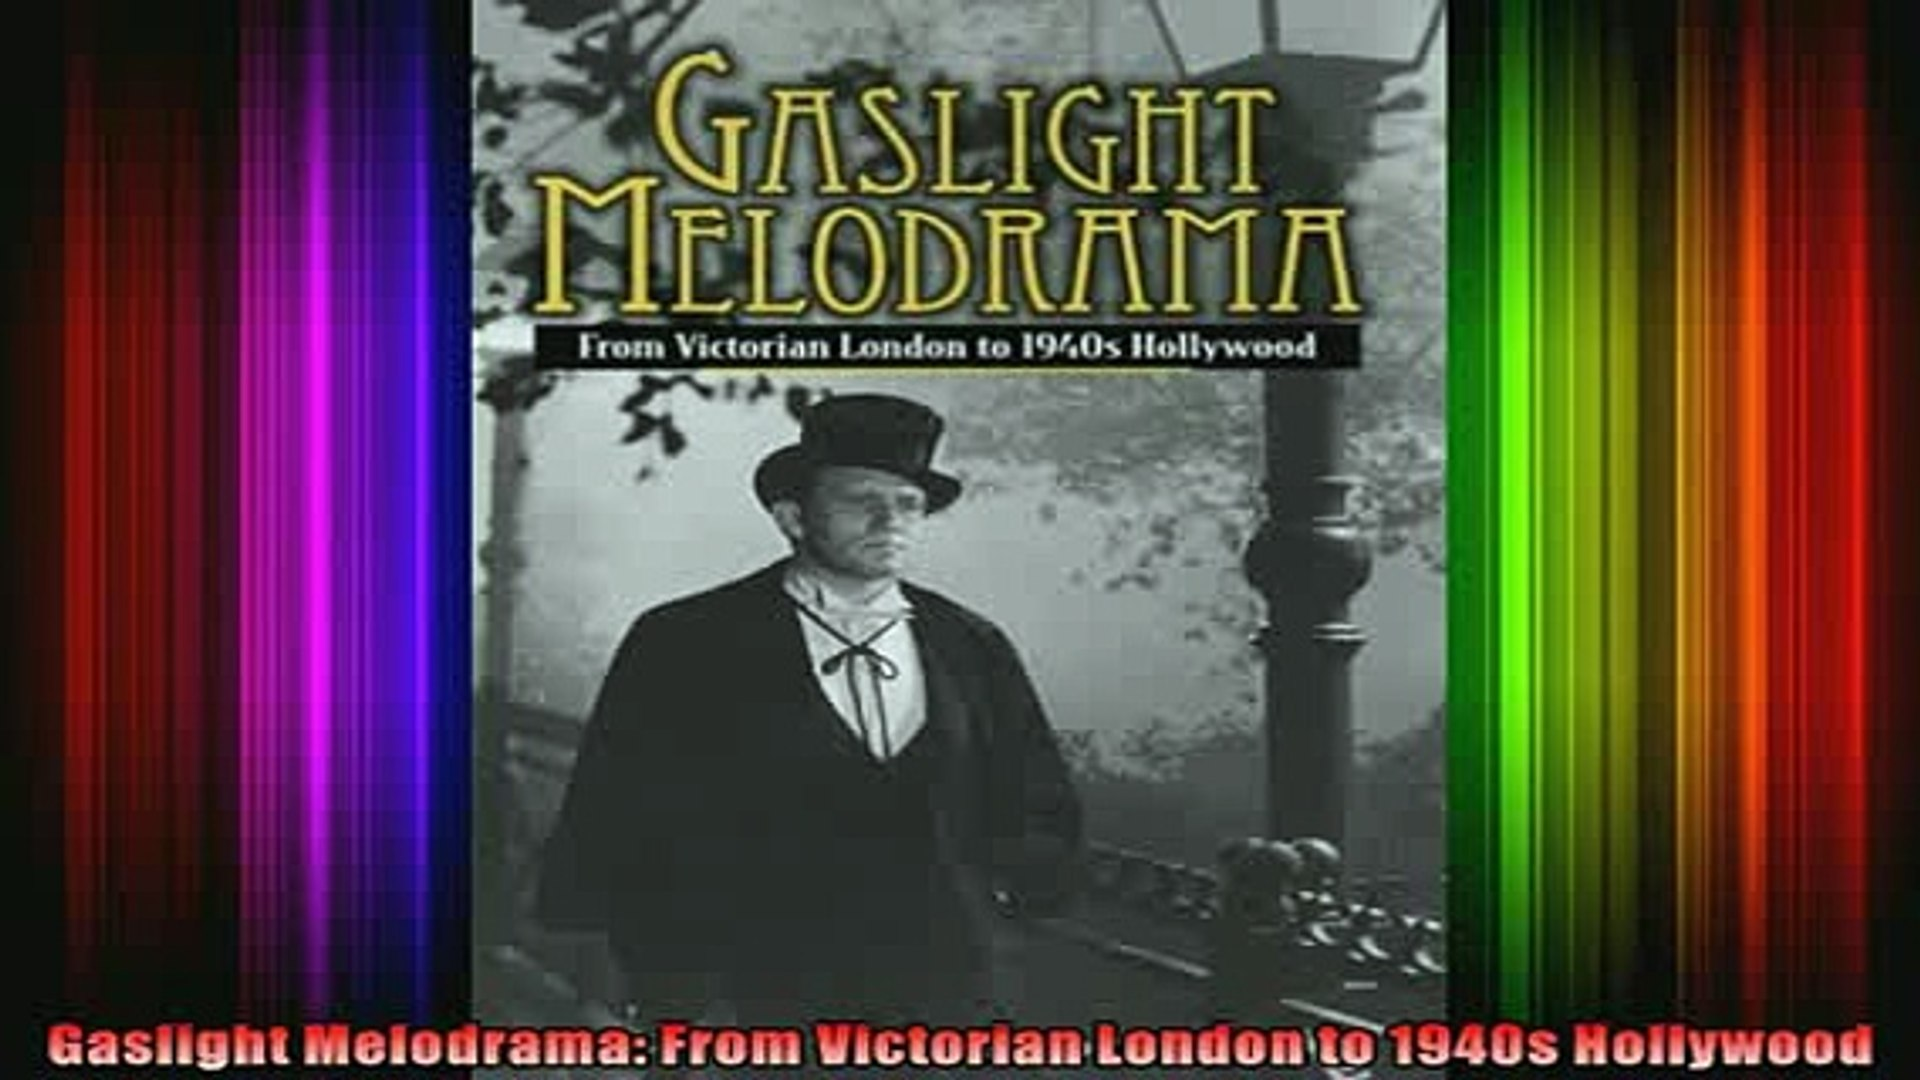 Downlaod Full PDF Free  Gaslight Melodrama From Victorian London to 1940s Hollywood Full Free